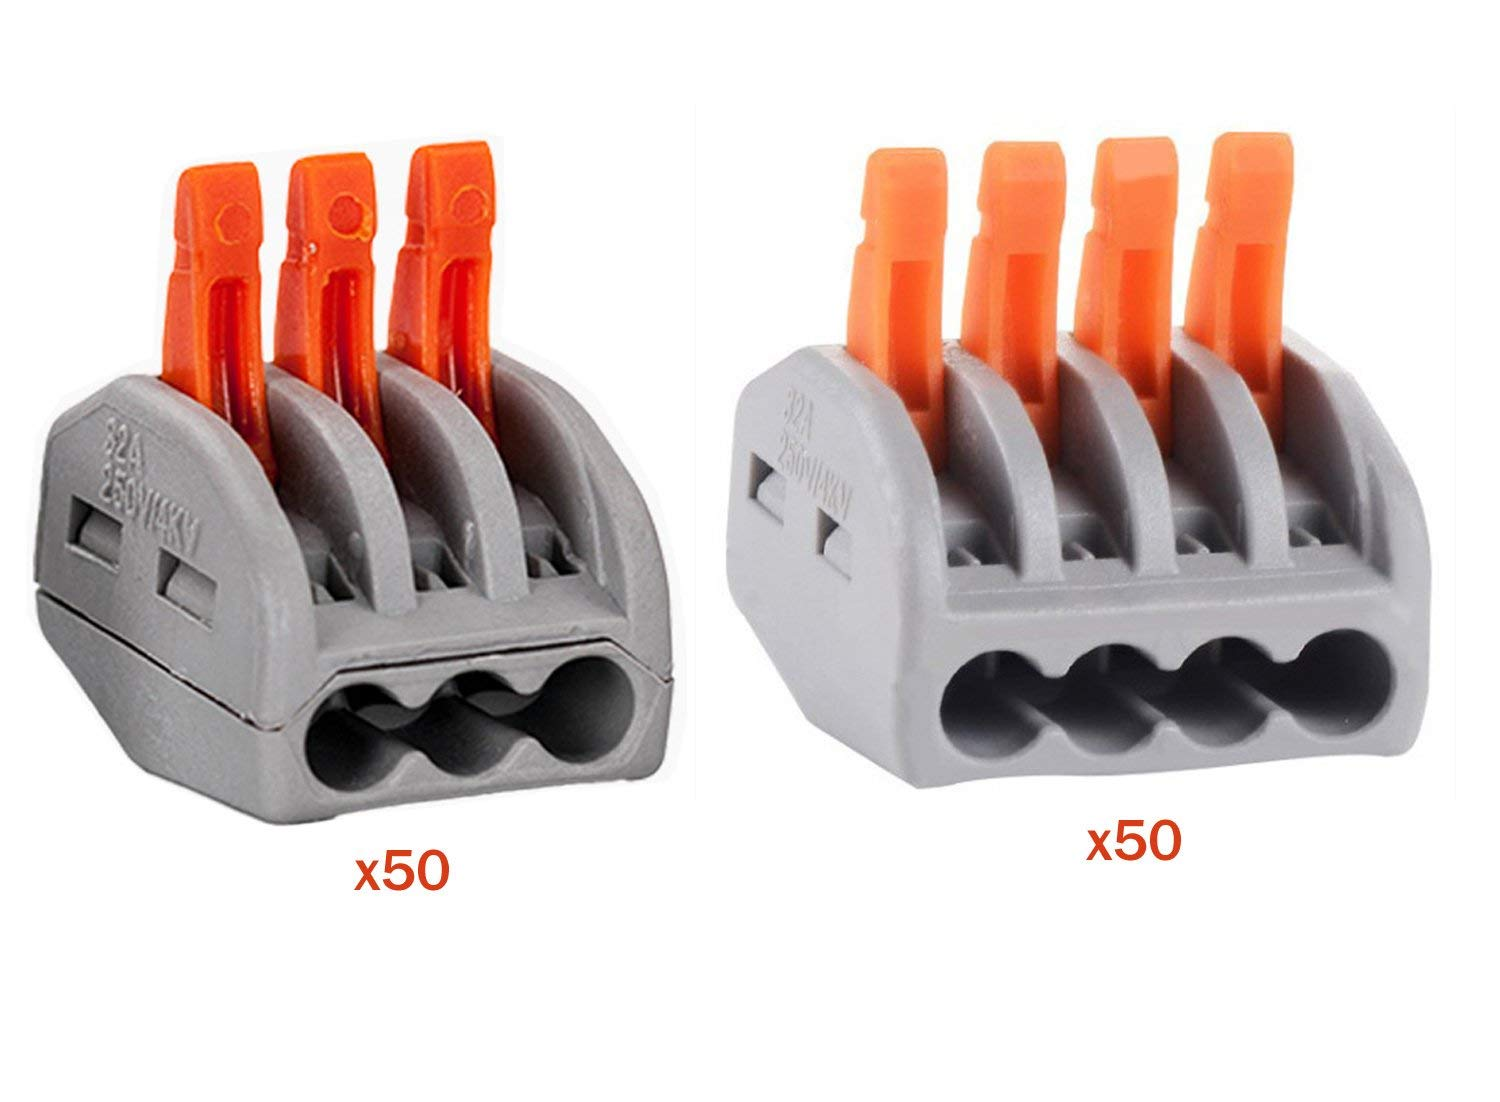 HIFROM Wire Compact Connectors 3 4 Port Lever-Nut Lever Conductor PCT-213 PCT-214 Terminal Block Wire Push Cable Connector for Junction Box Assortment Pack (100 PCS)